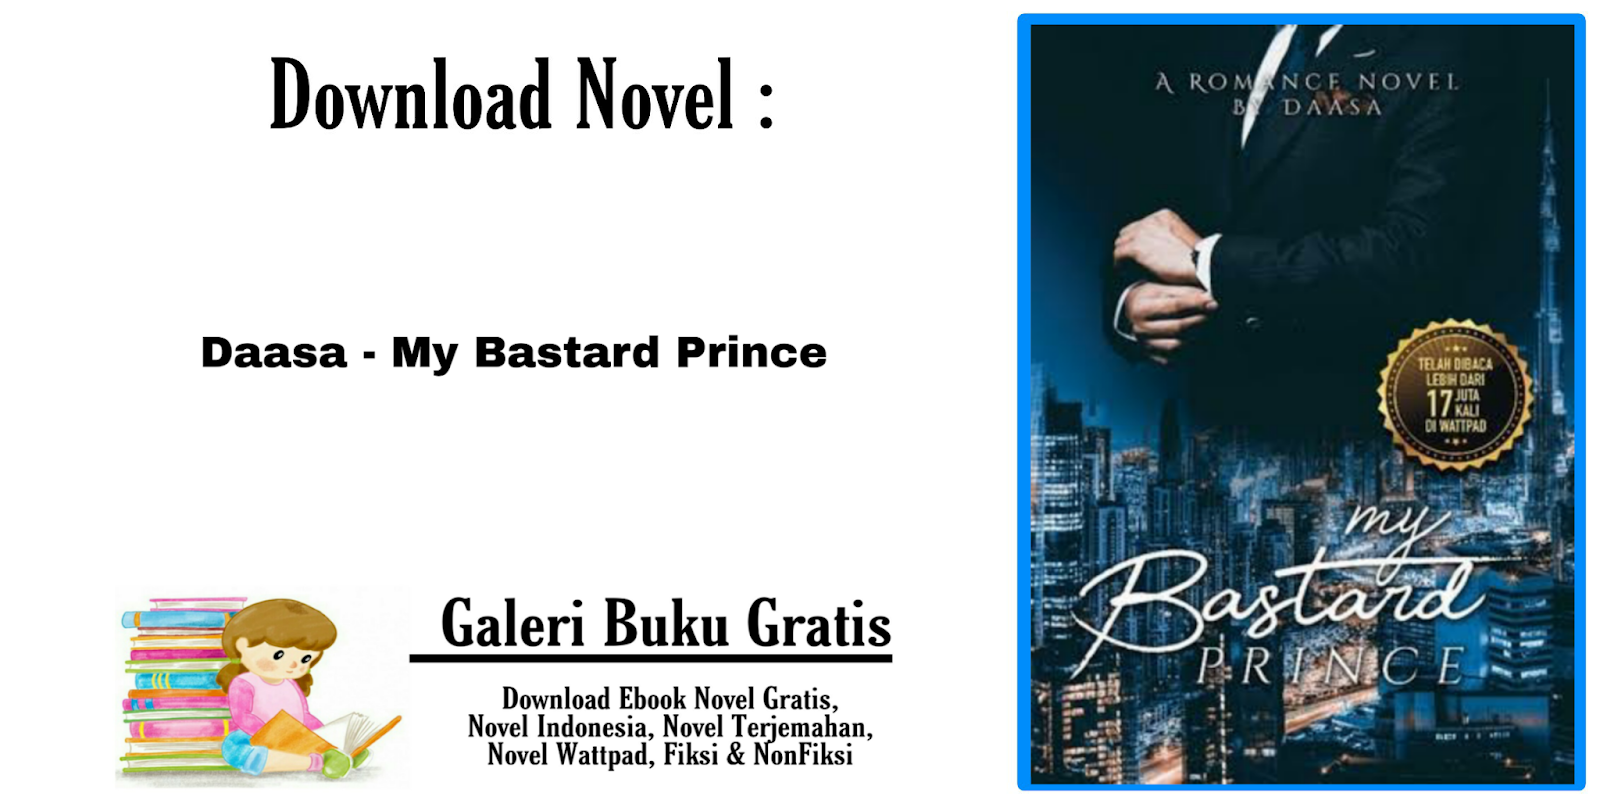 Ebook Novel Terjemahan Indonesia Gratis